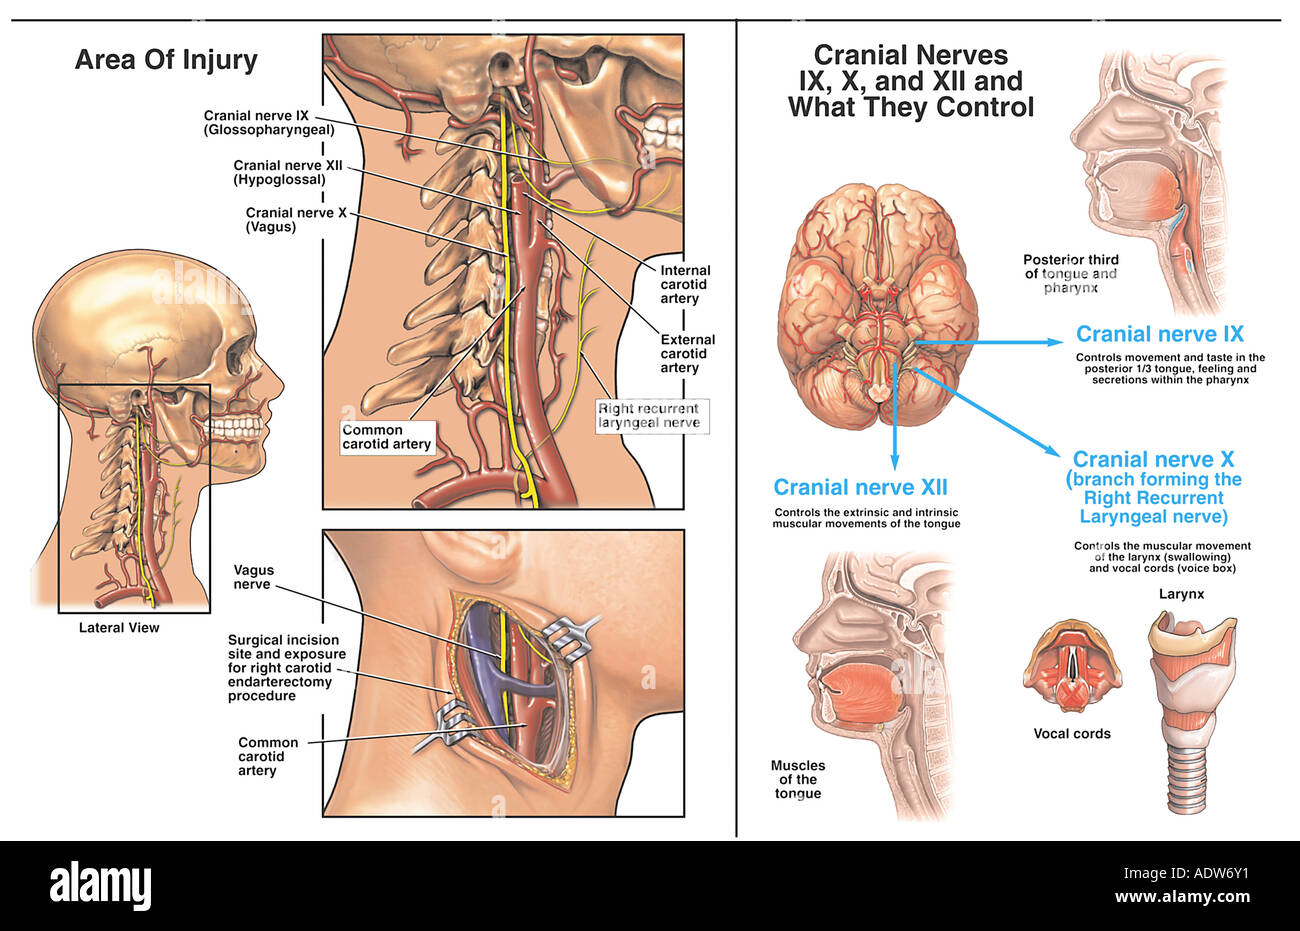 Larynx Operation Stock Photos & Larynx Operation Stock Images - Alamy